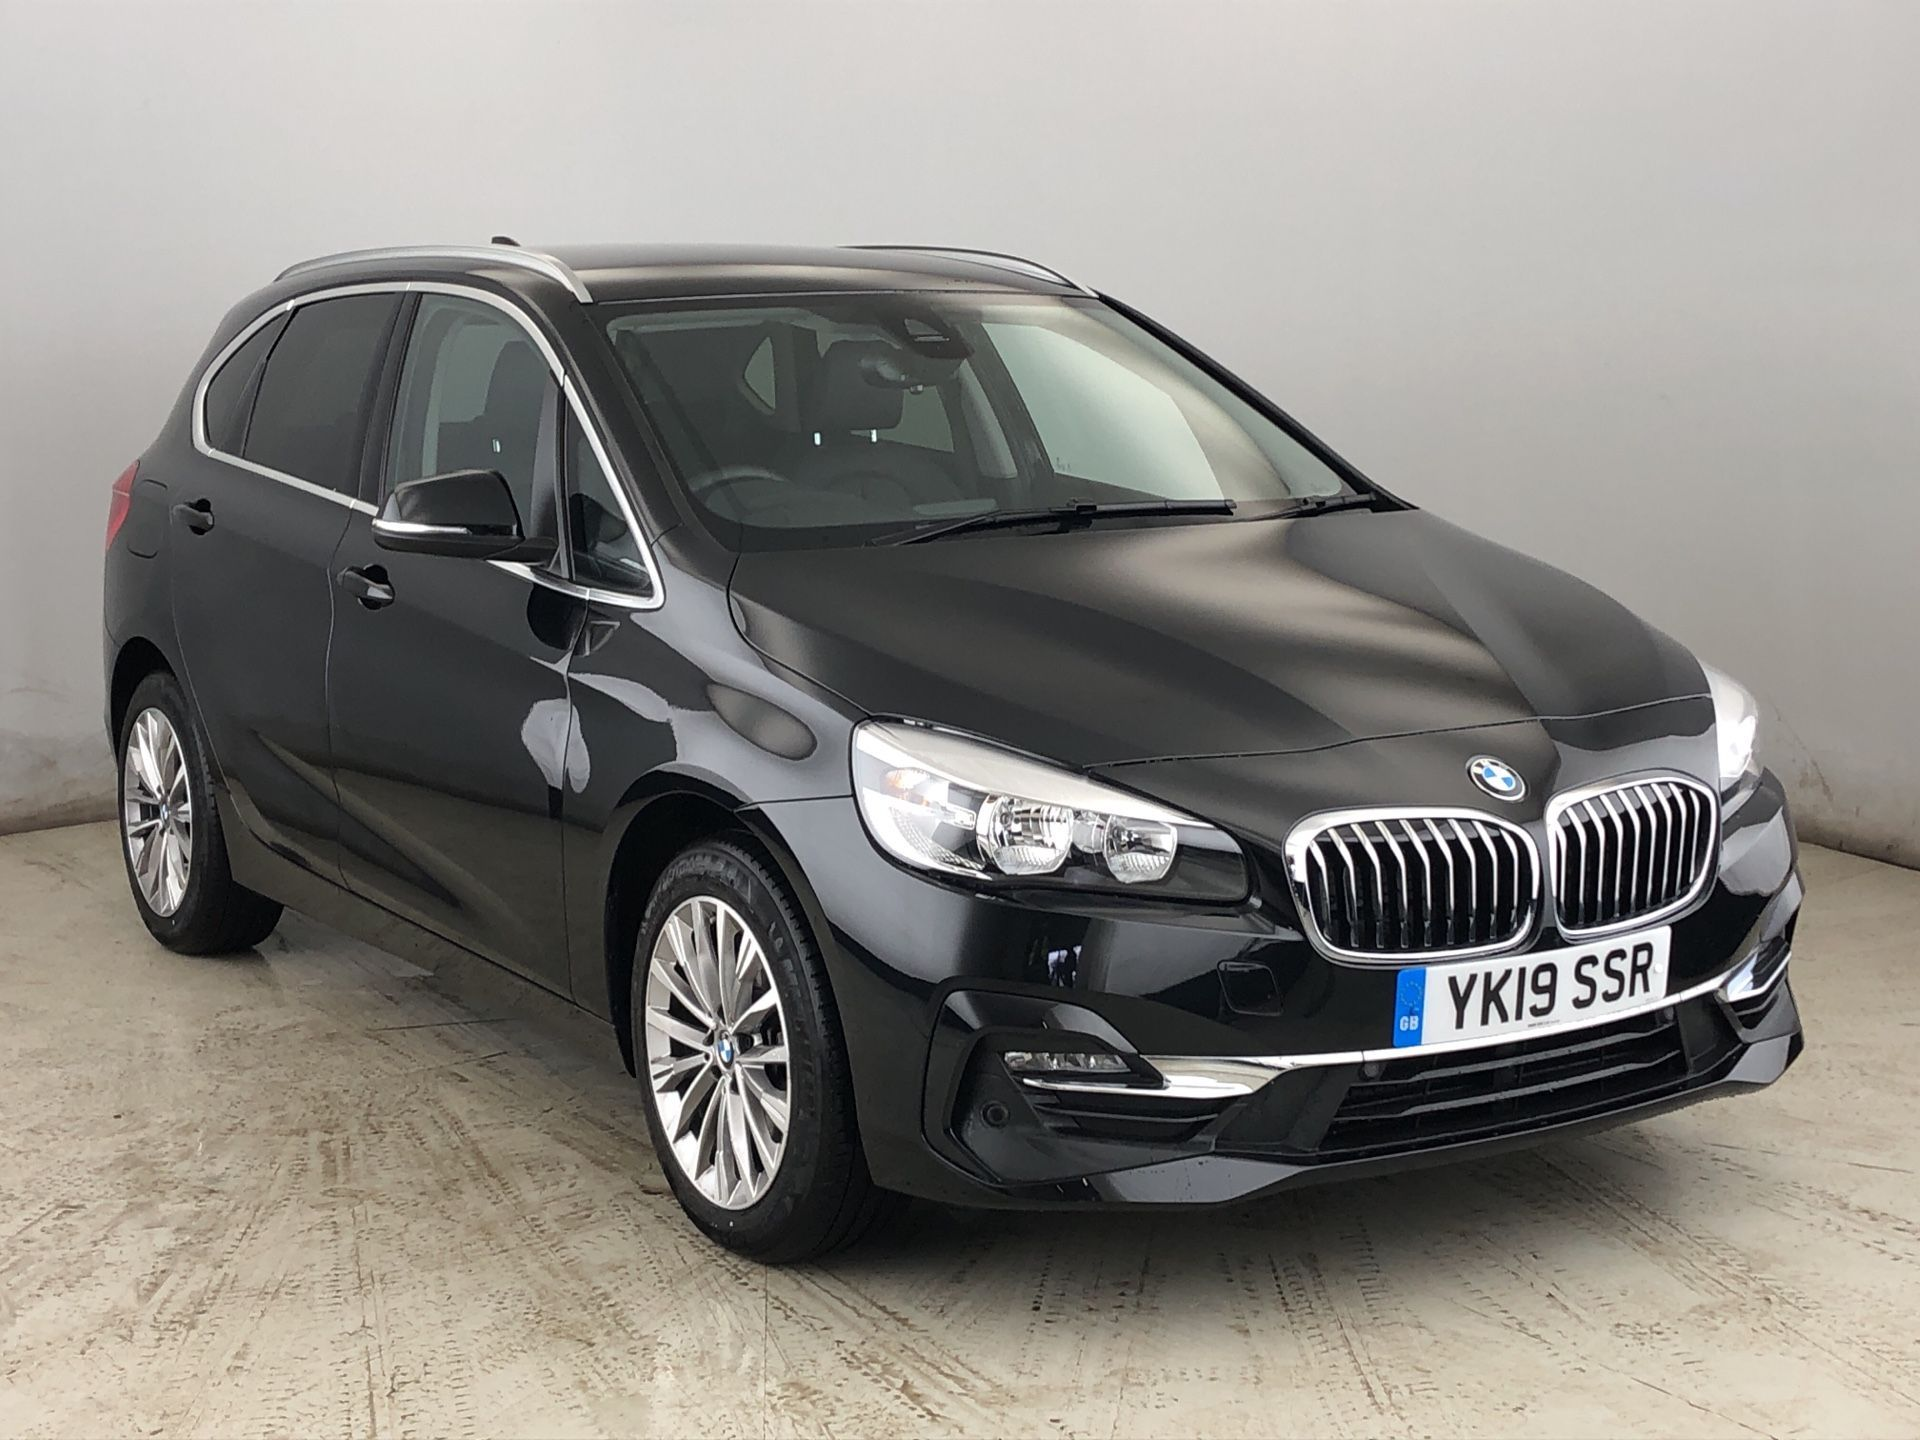 Image 1 - BMW 218i Luxury Active Tourer (YK19SSR)